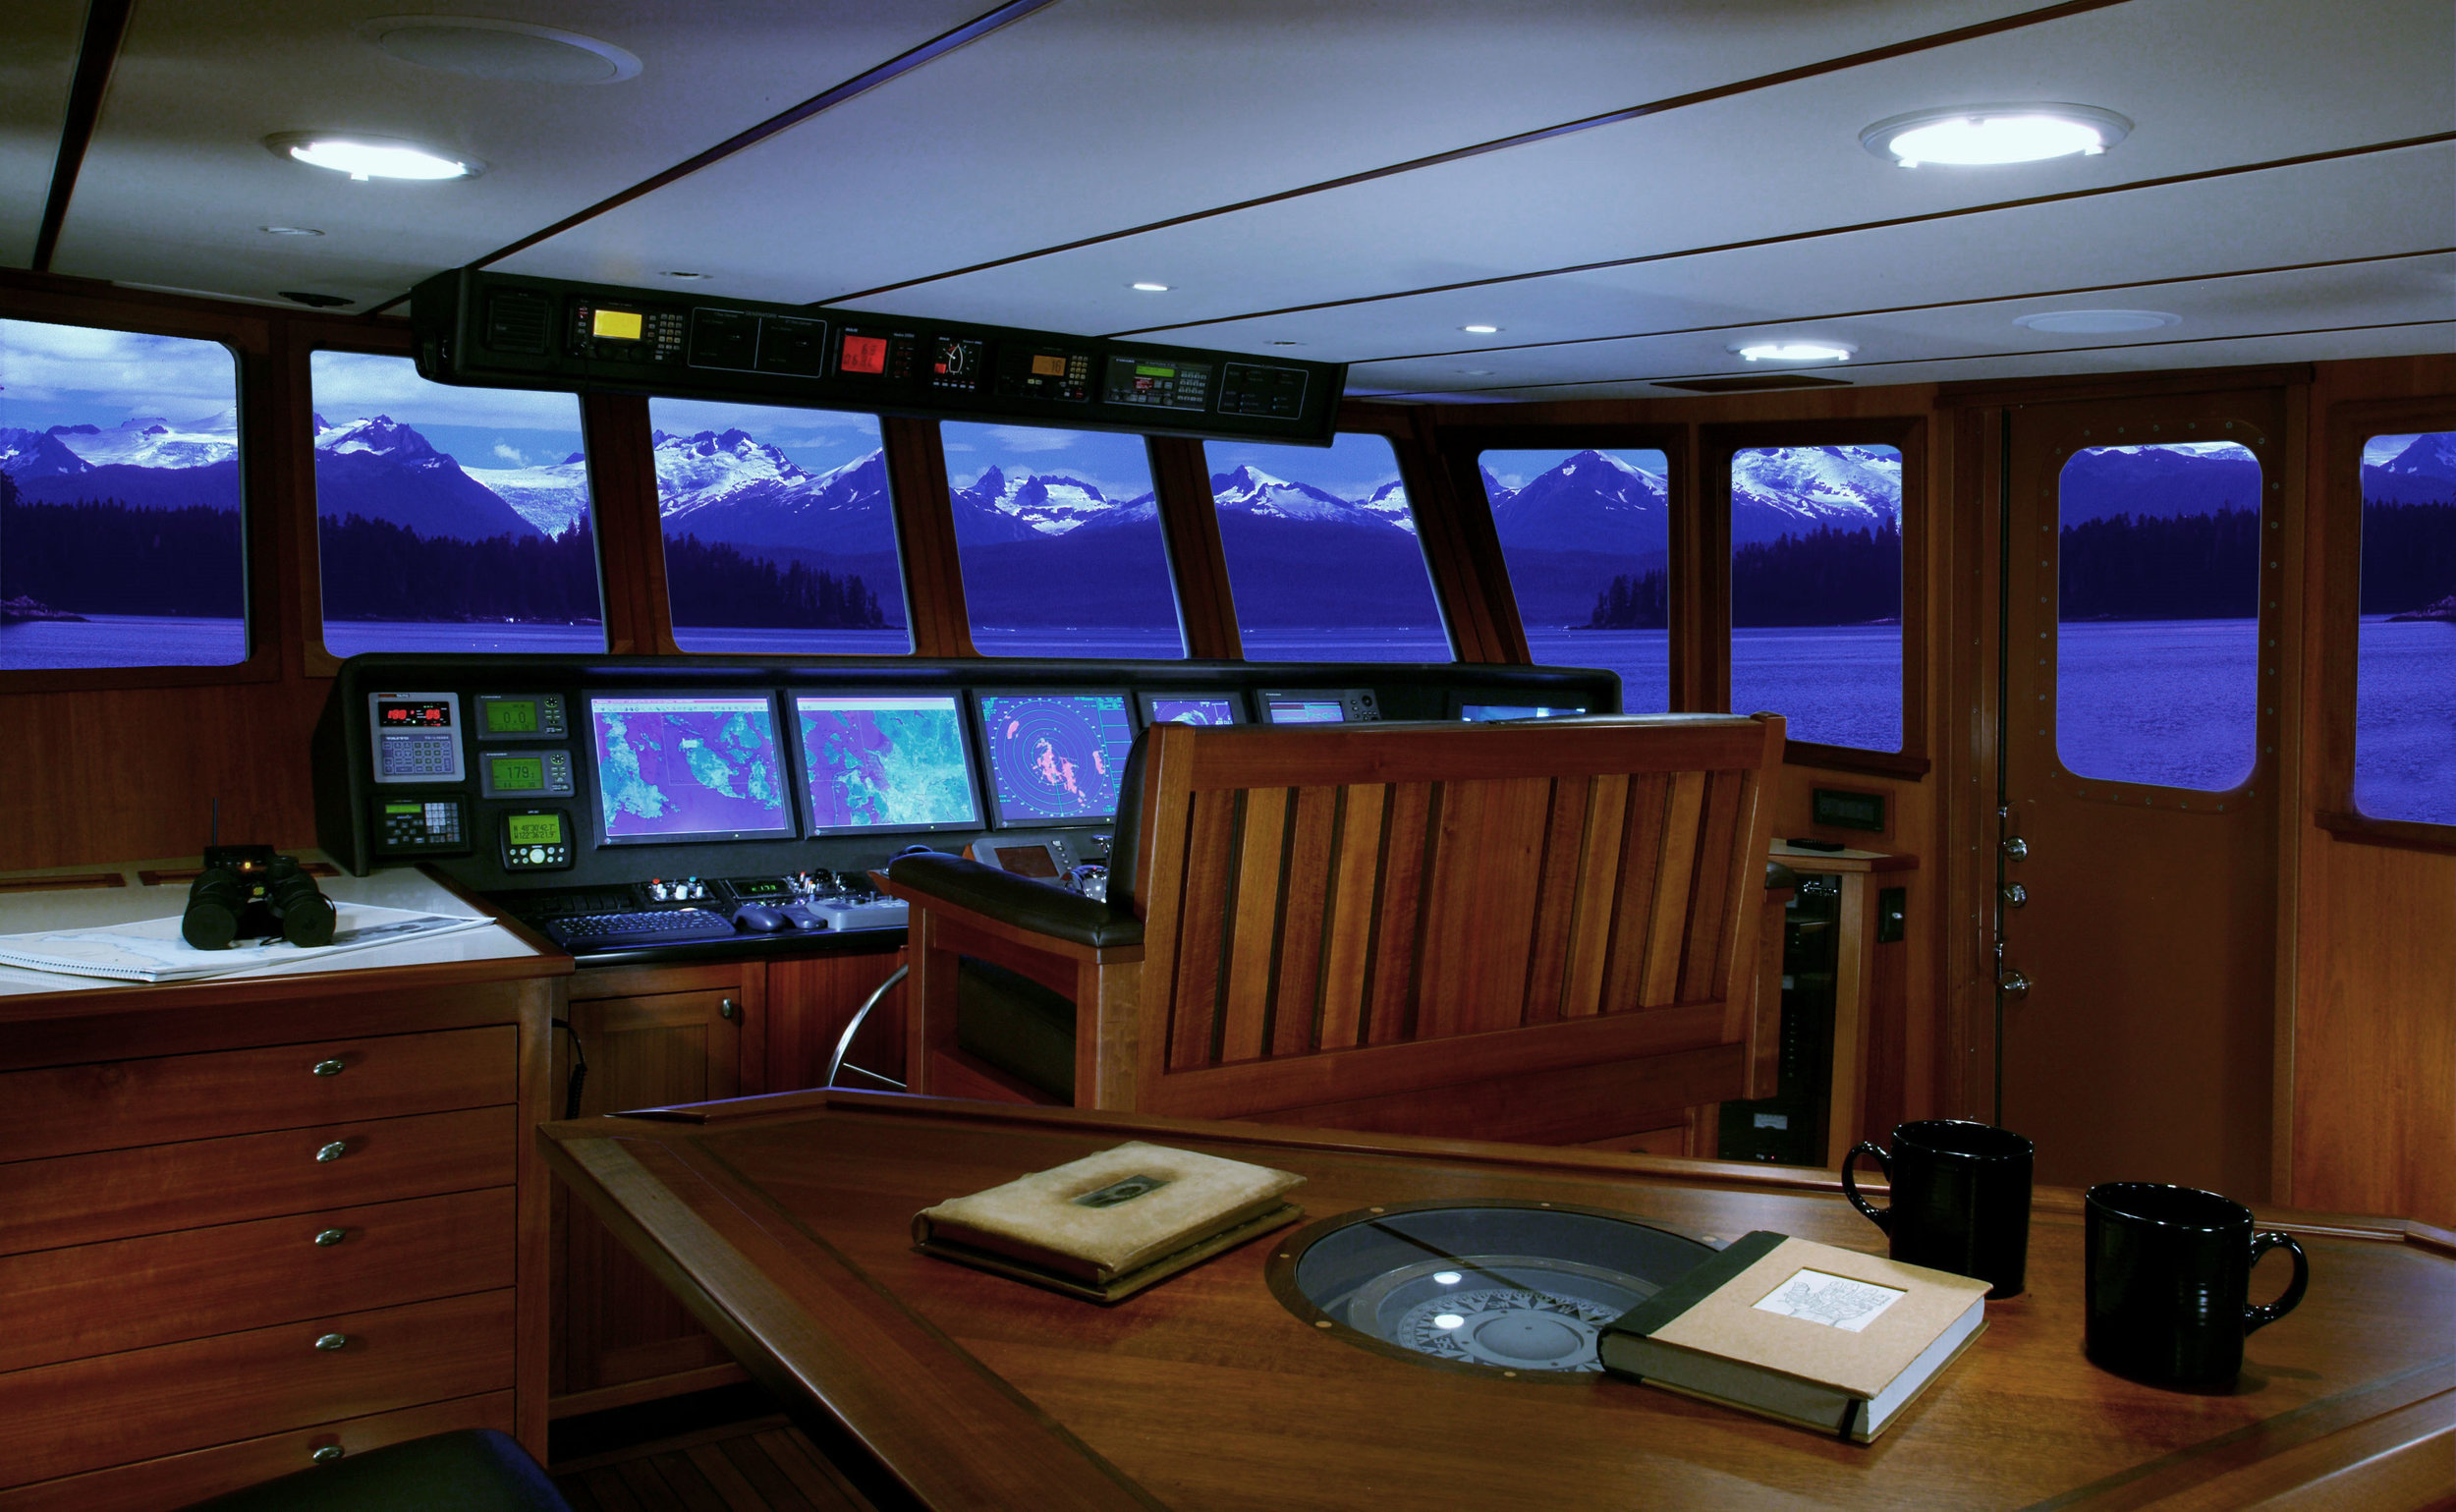 Meander pilot house fwd pic ps 1MB.jpg